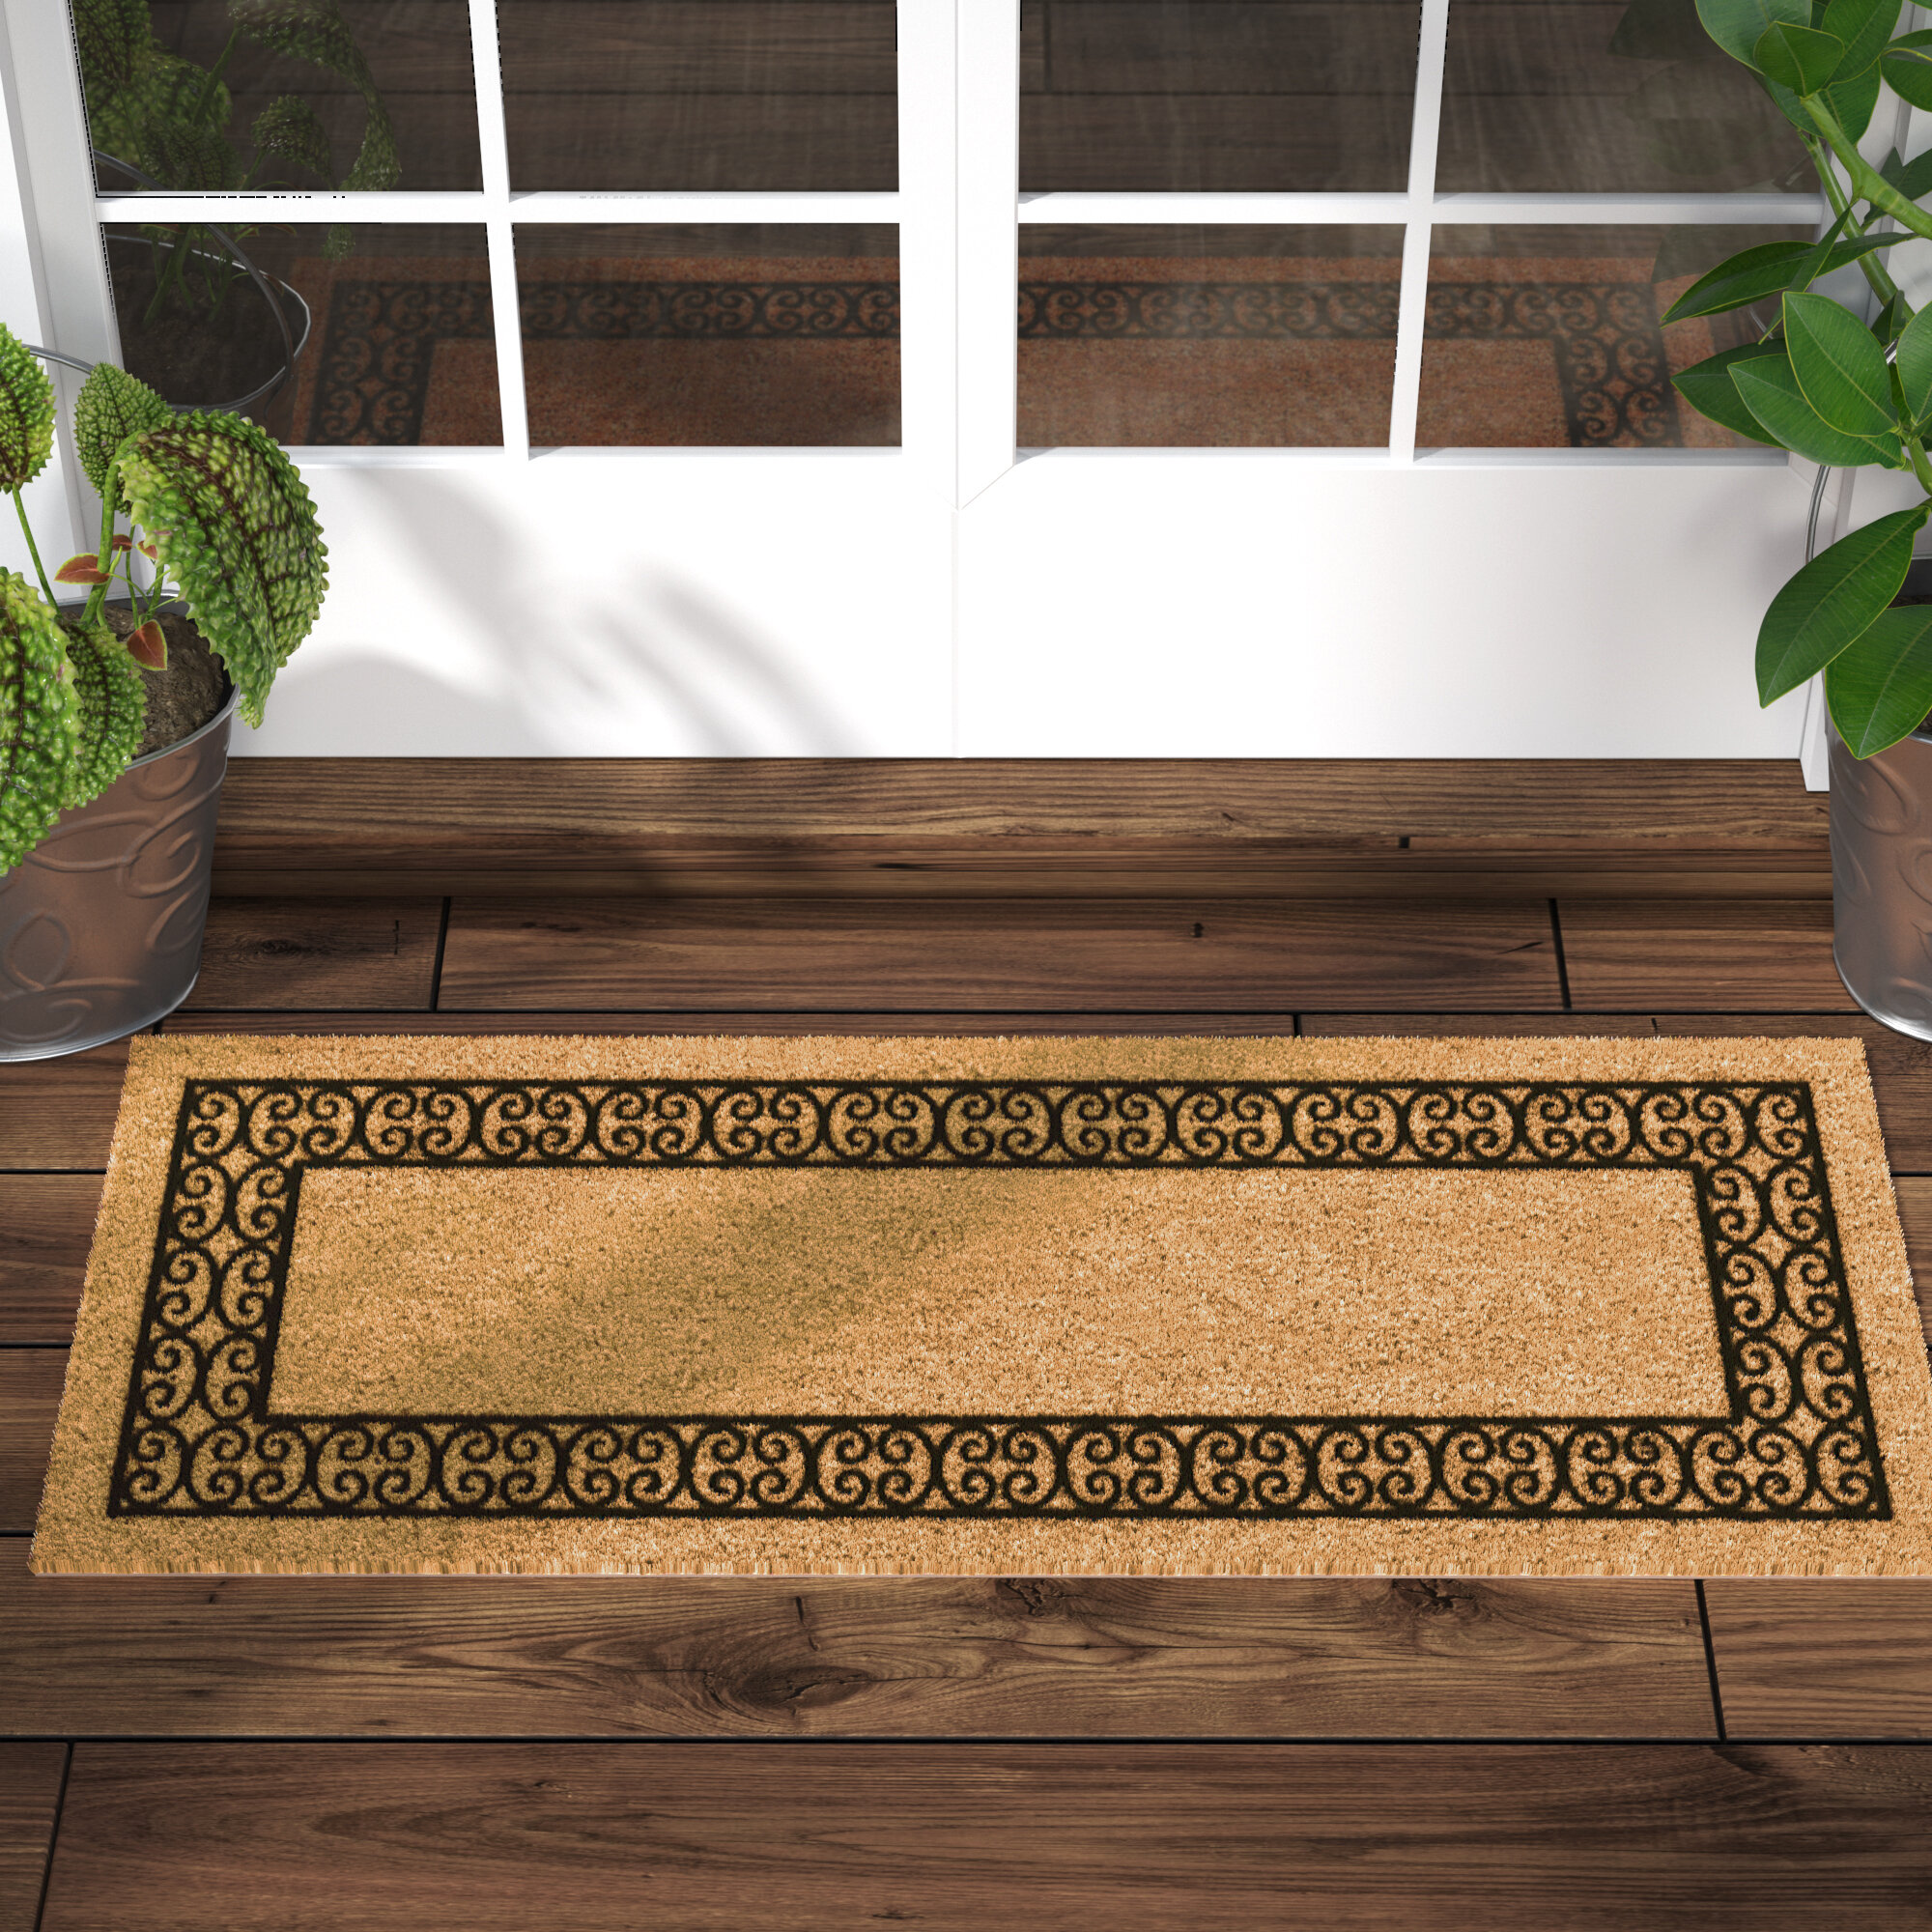 outdoor mat coir mats cool door double luxury external large doormats small big doormat welcome doors rubber